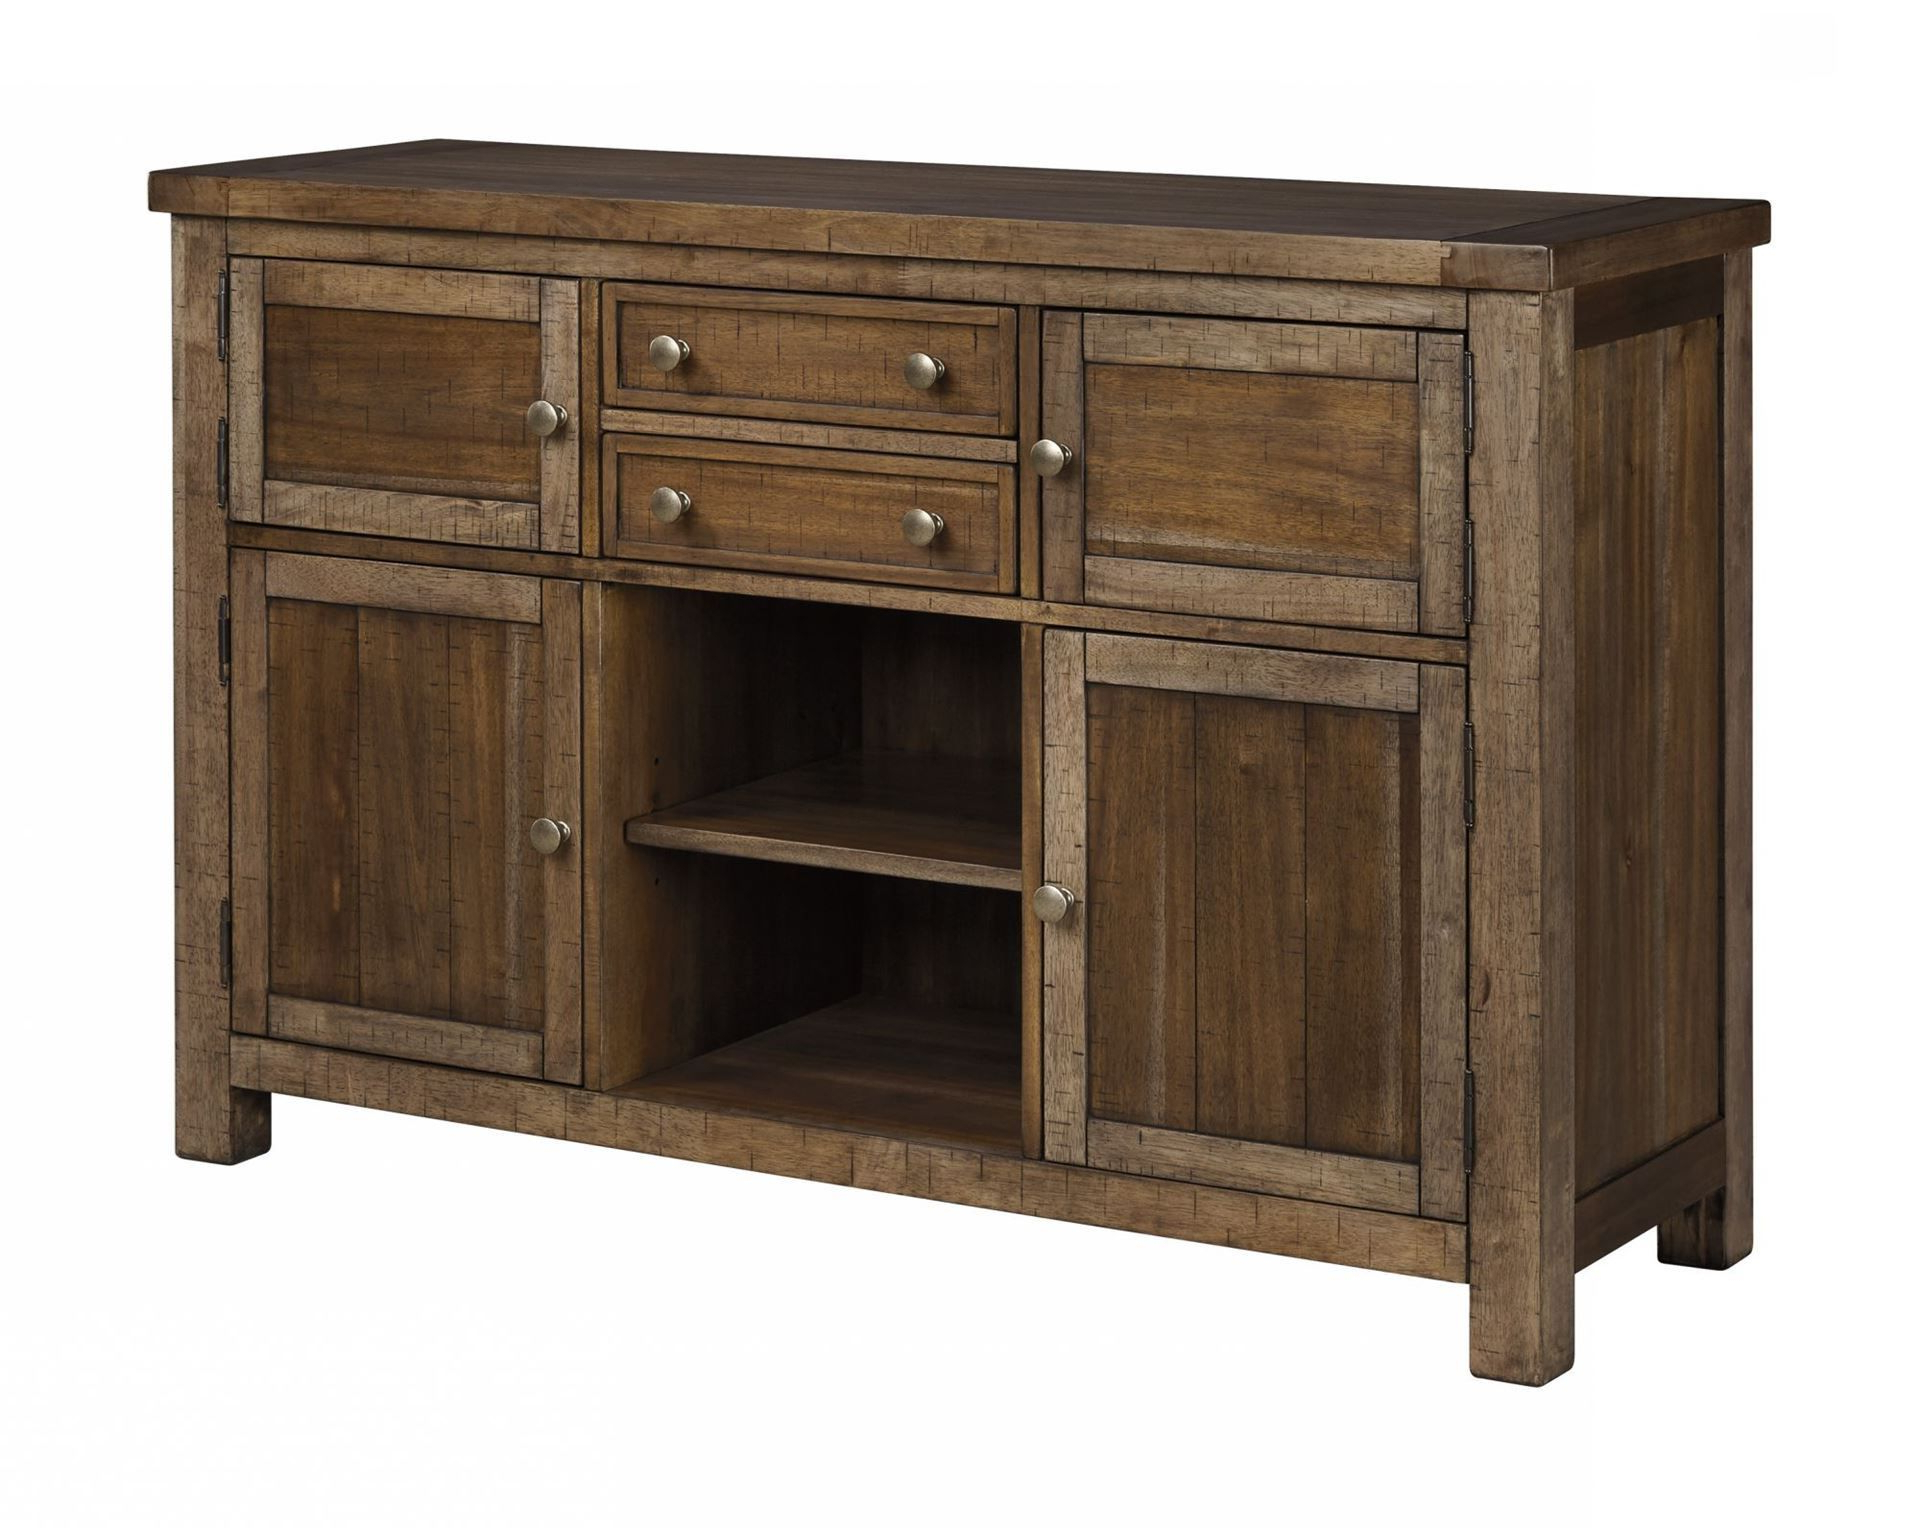 Moriville Server In 2019 | Beach | Dining Room Buffet In Nashoba Sideboards (View 3 of 20)